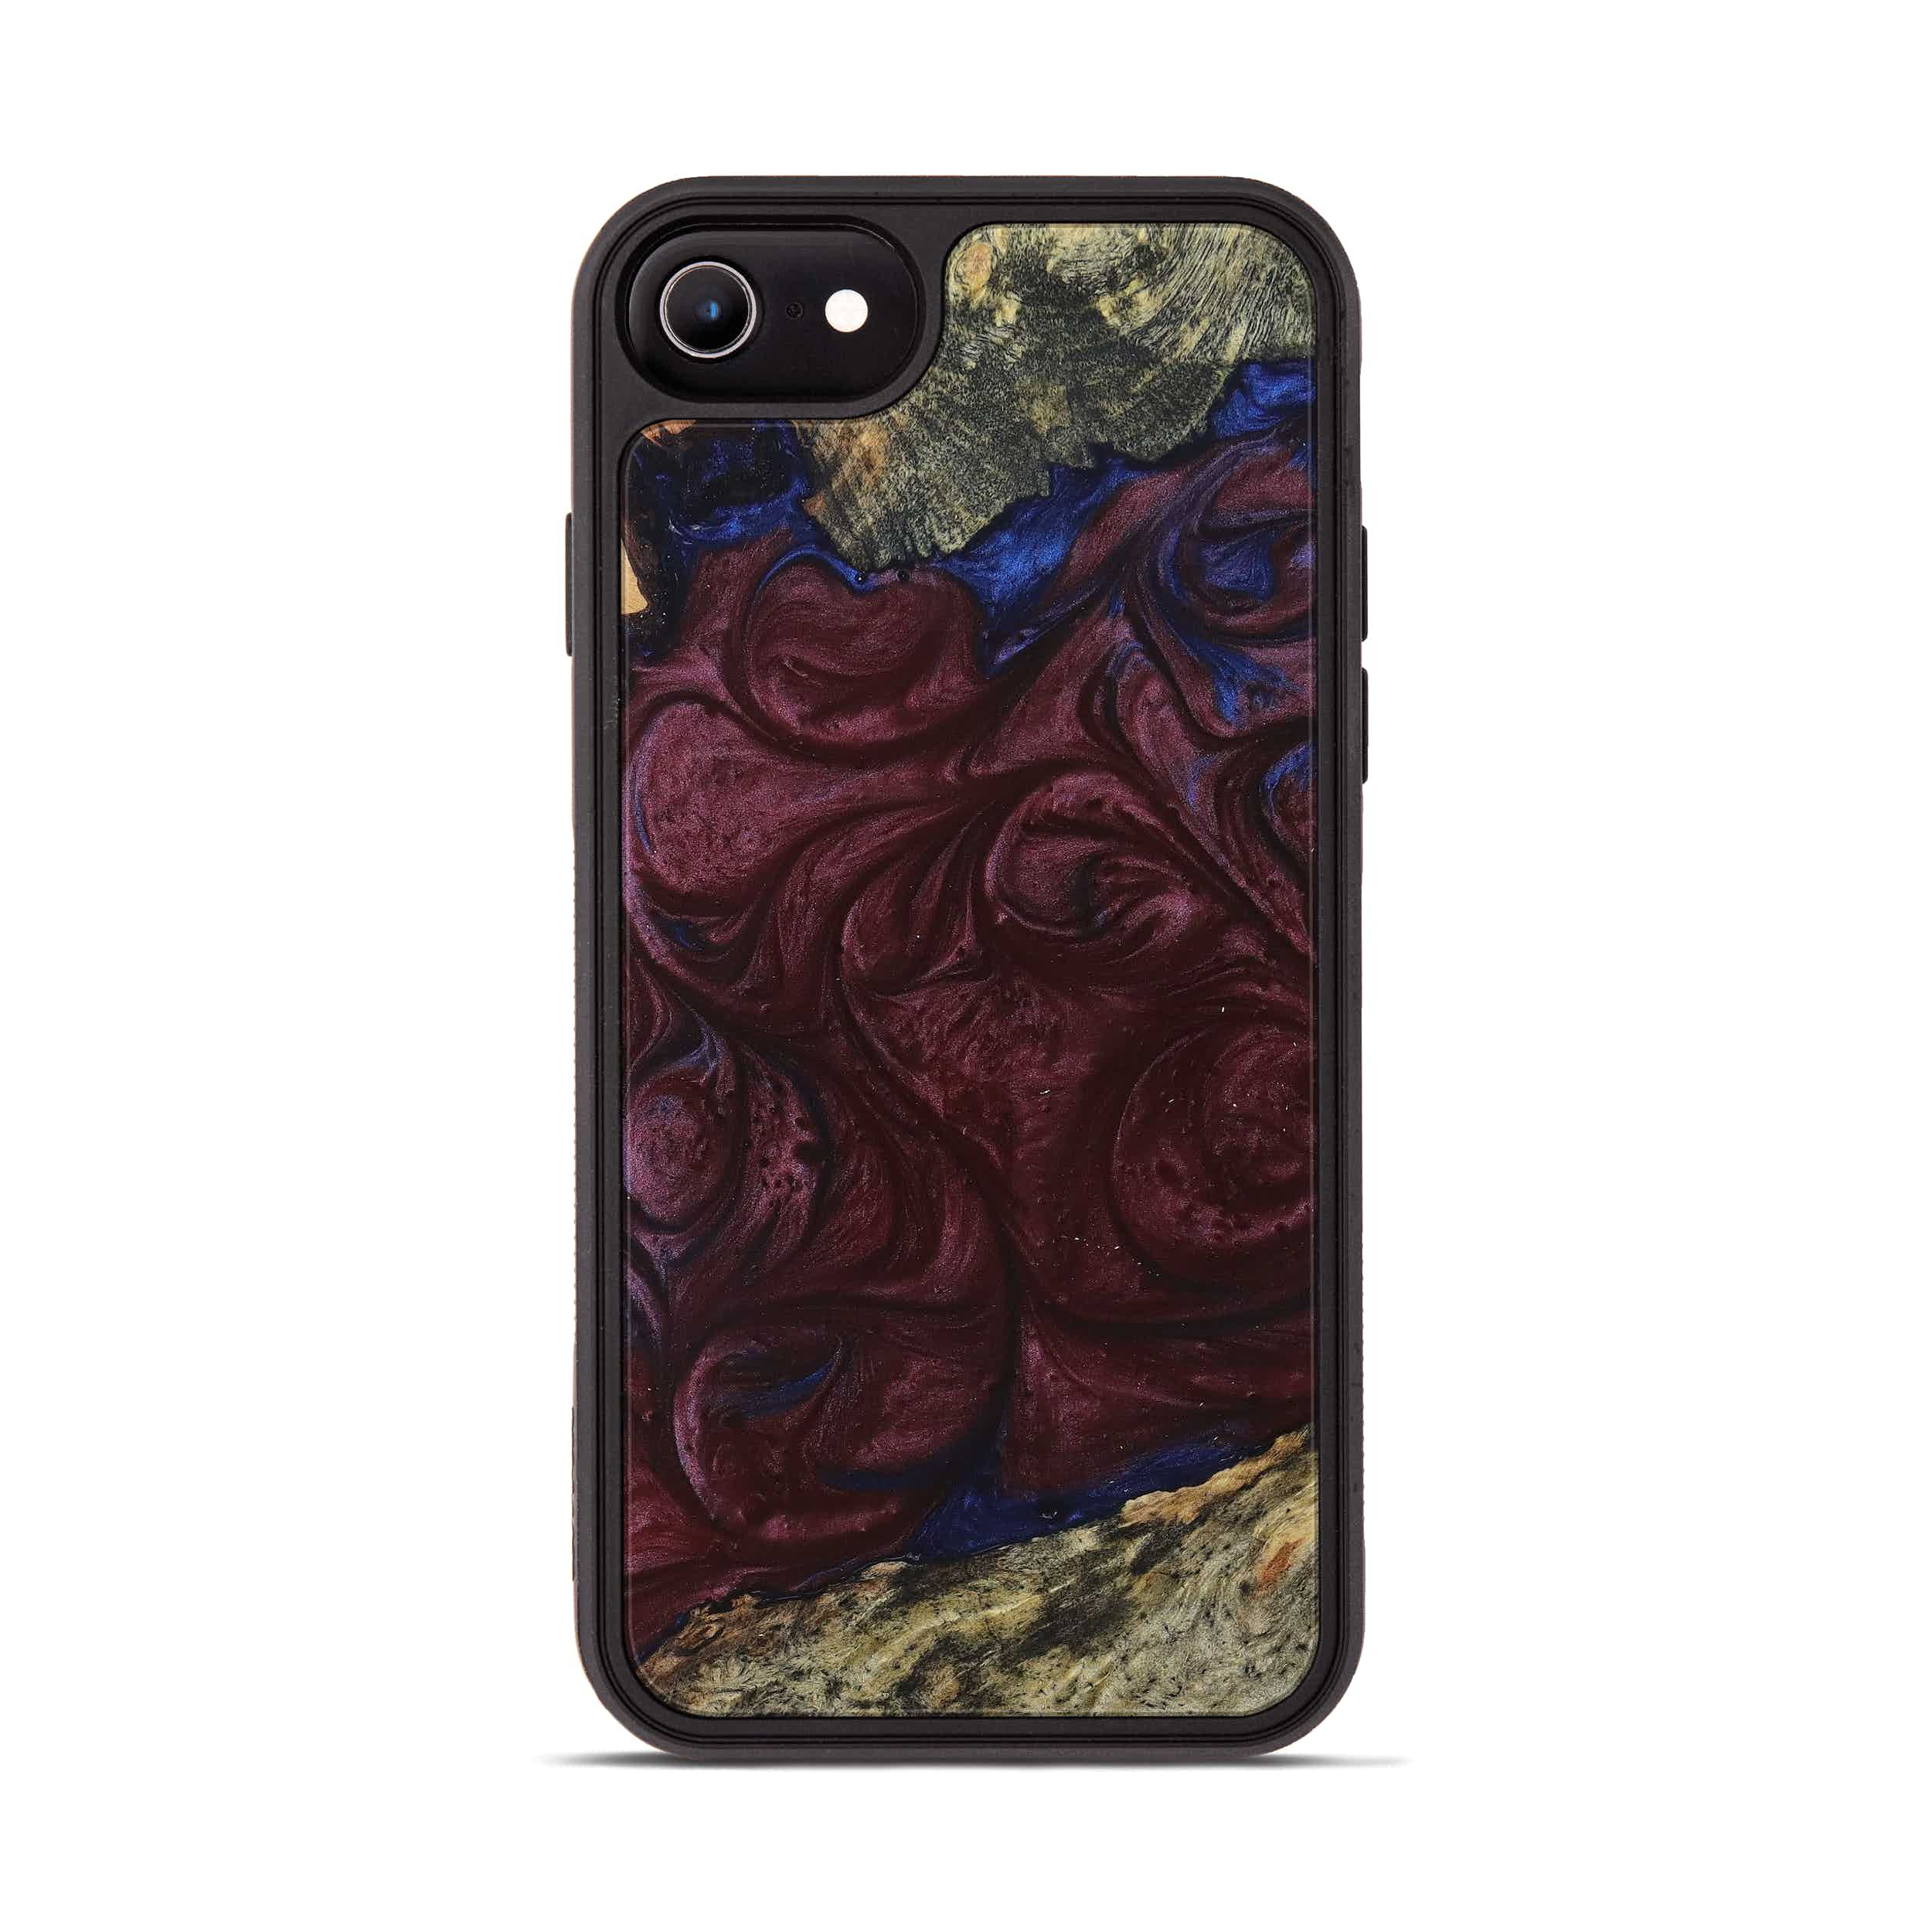 iPhone 6s Wood+Resin Phone Case - Anhtuan (Blue & Red, 394789)